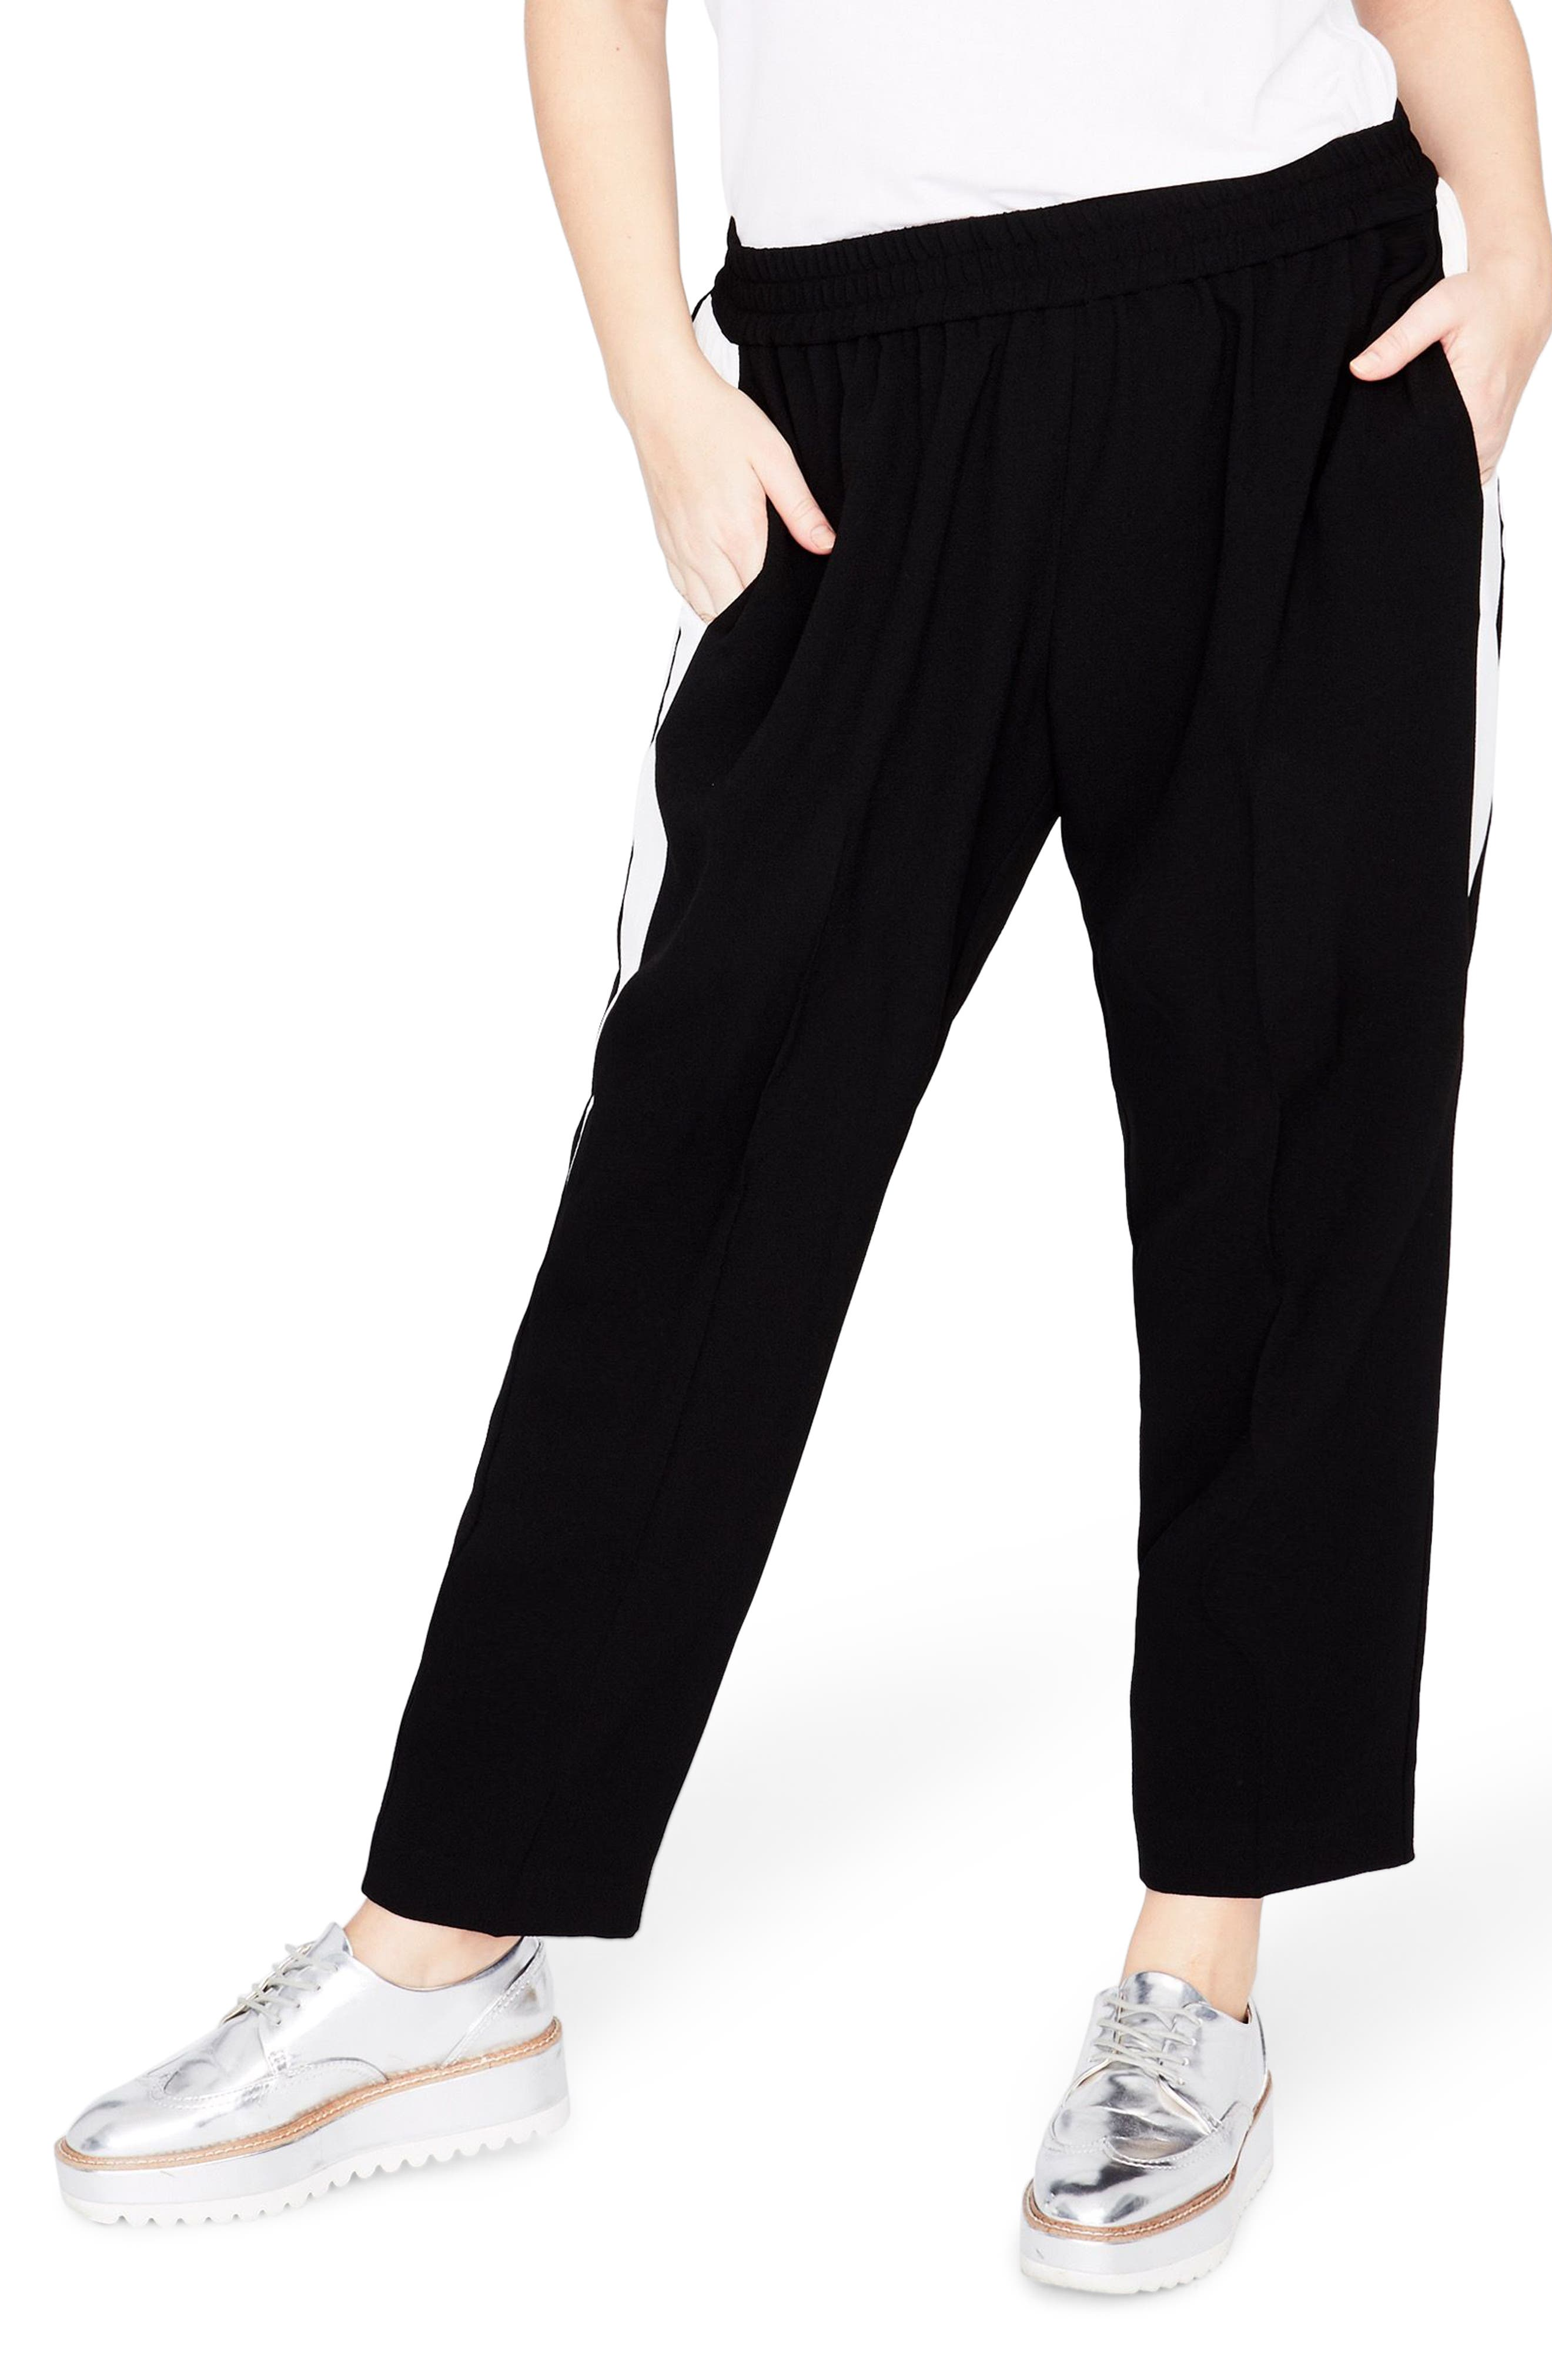 Inset Track Pants,                         Main,                         color, 001